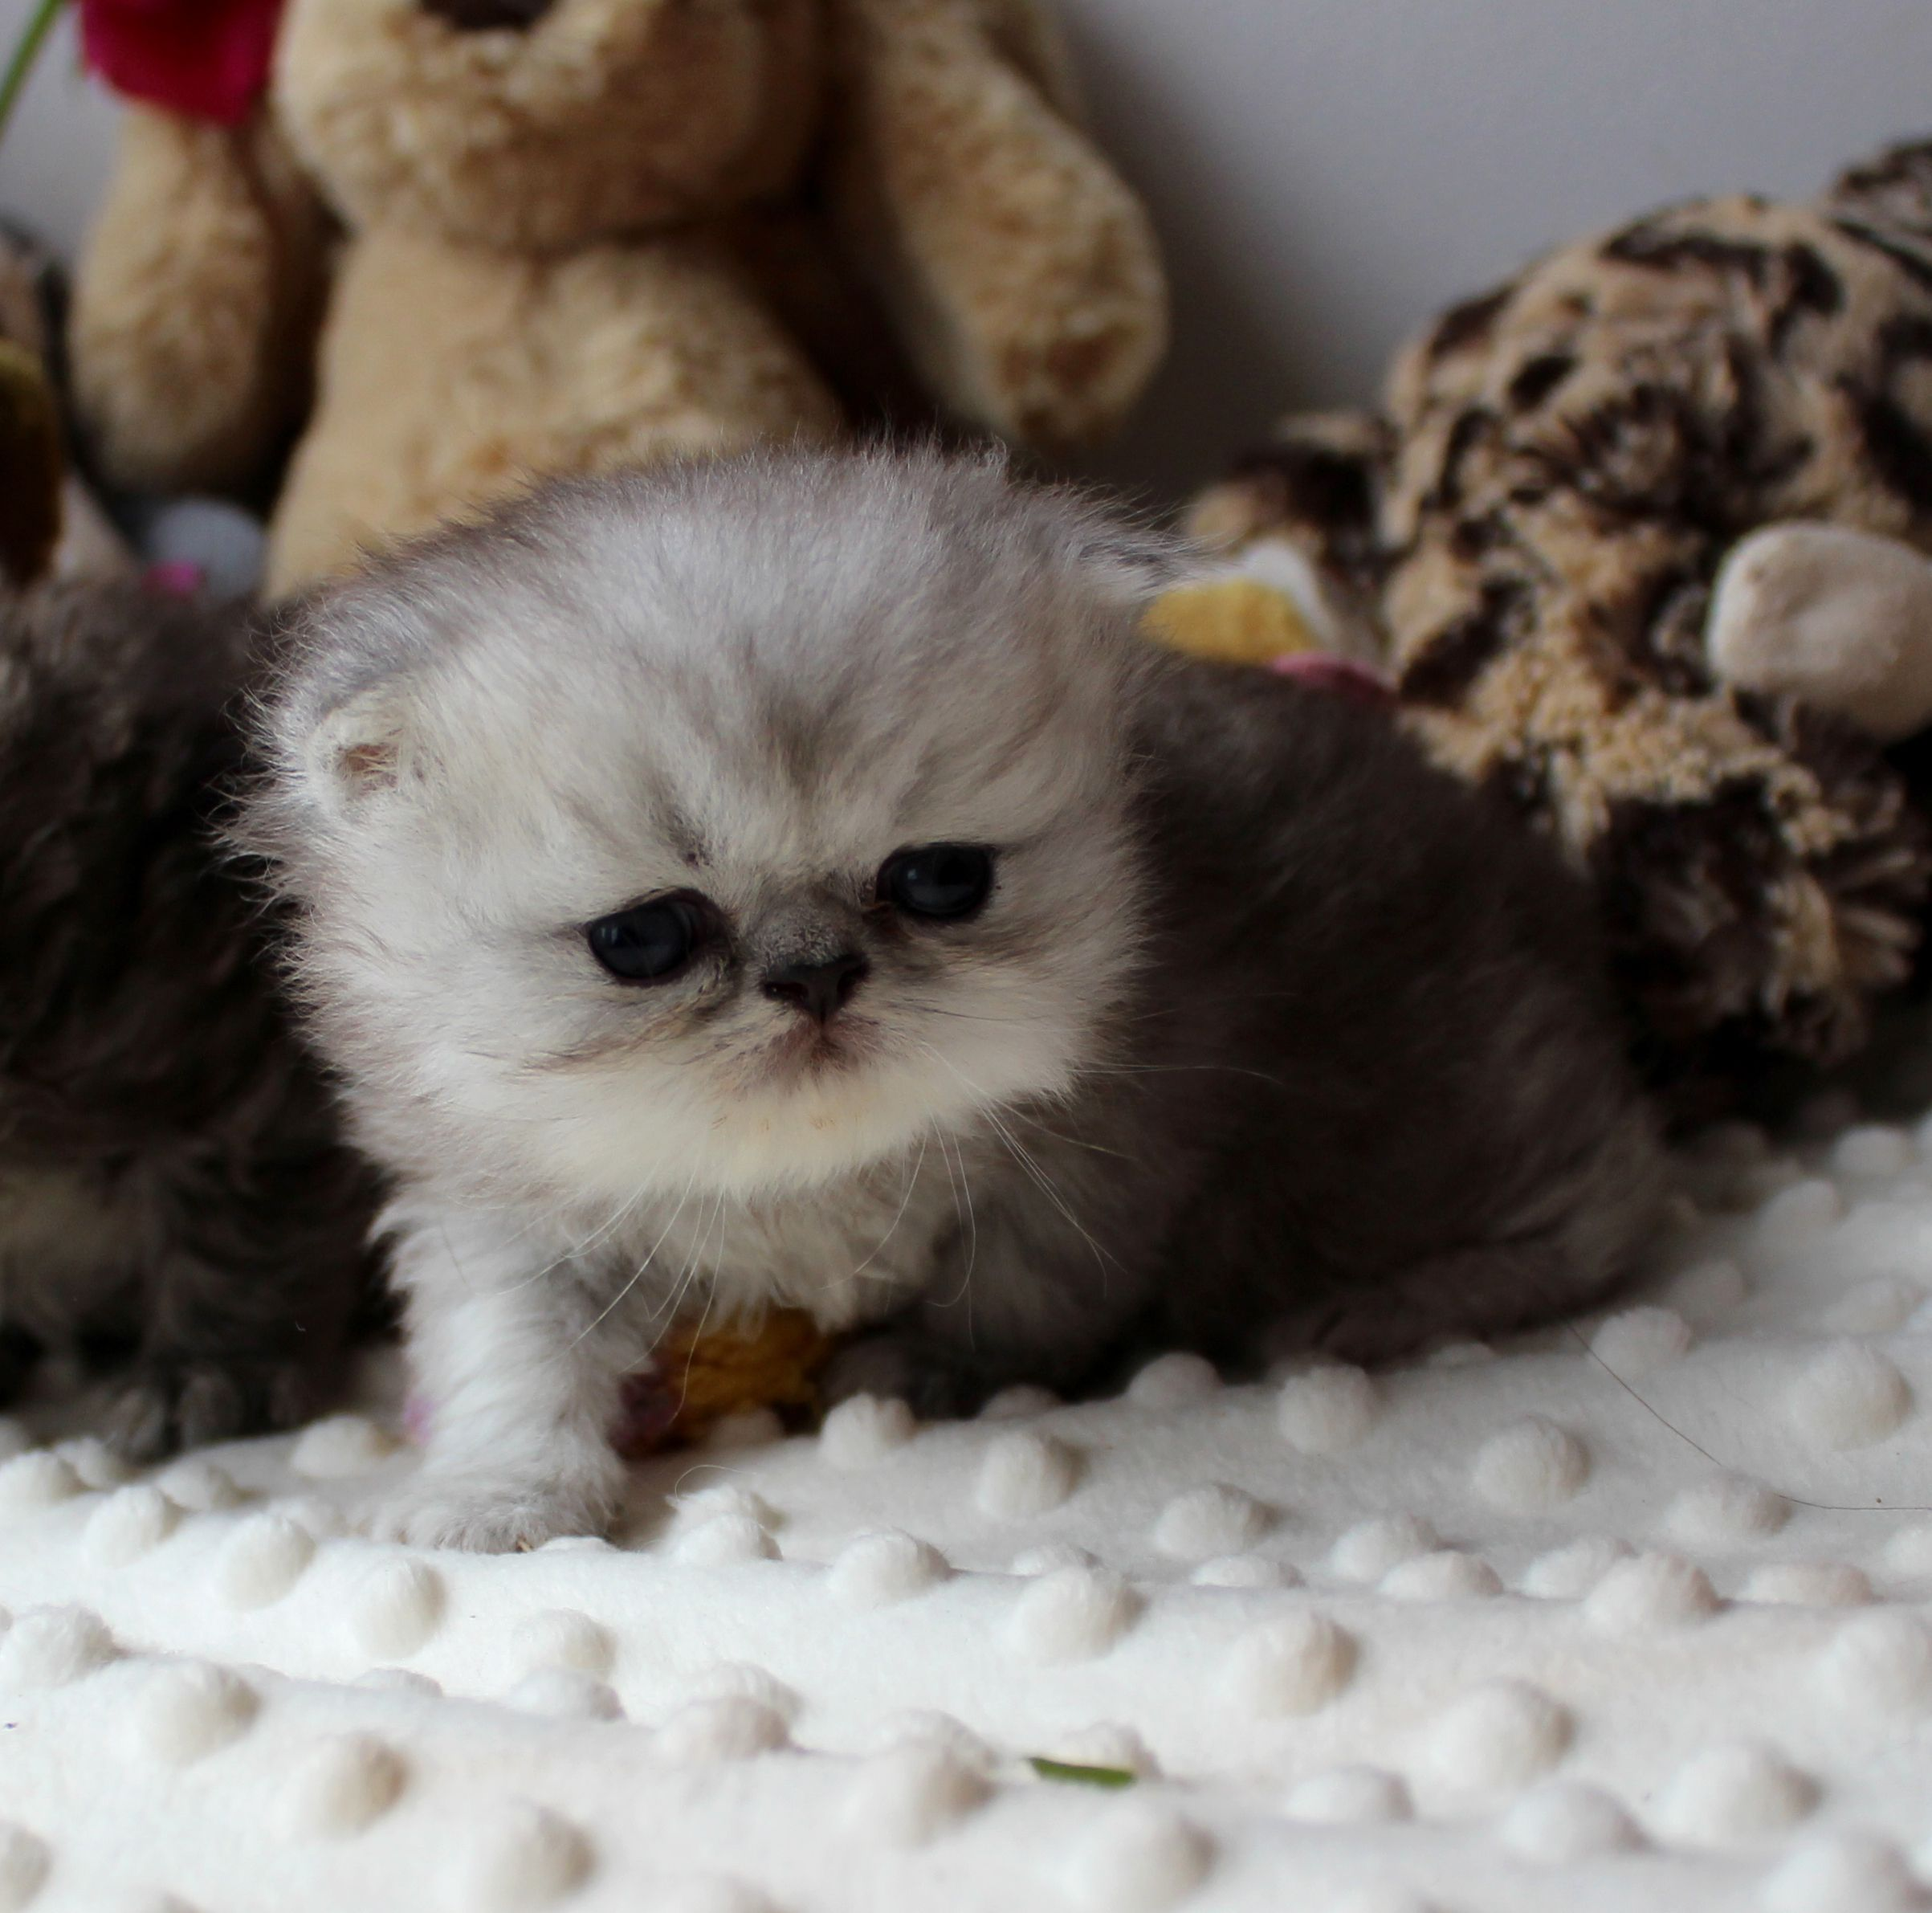 Vevosa S Icka Here At 3 Weeks Now This Little Man Is Cute Cute Cute Silver Shaded Persian Baby Boy S Cute Cats Cute Animals Kittens Cutest